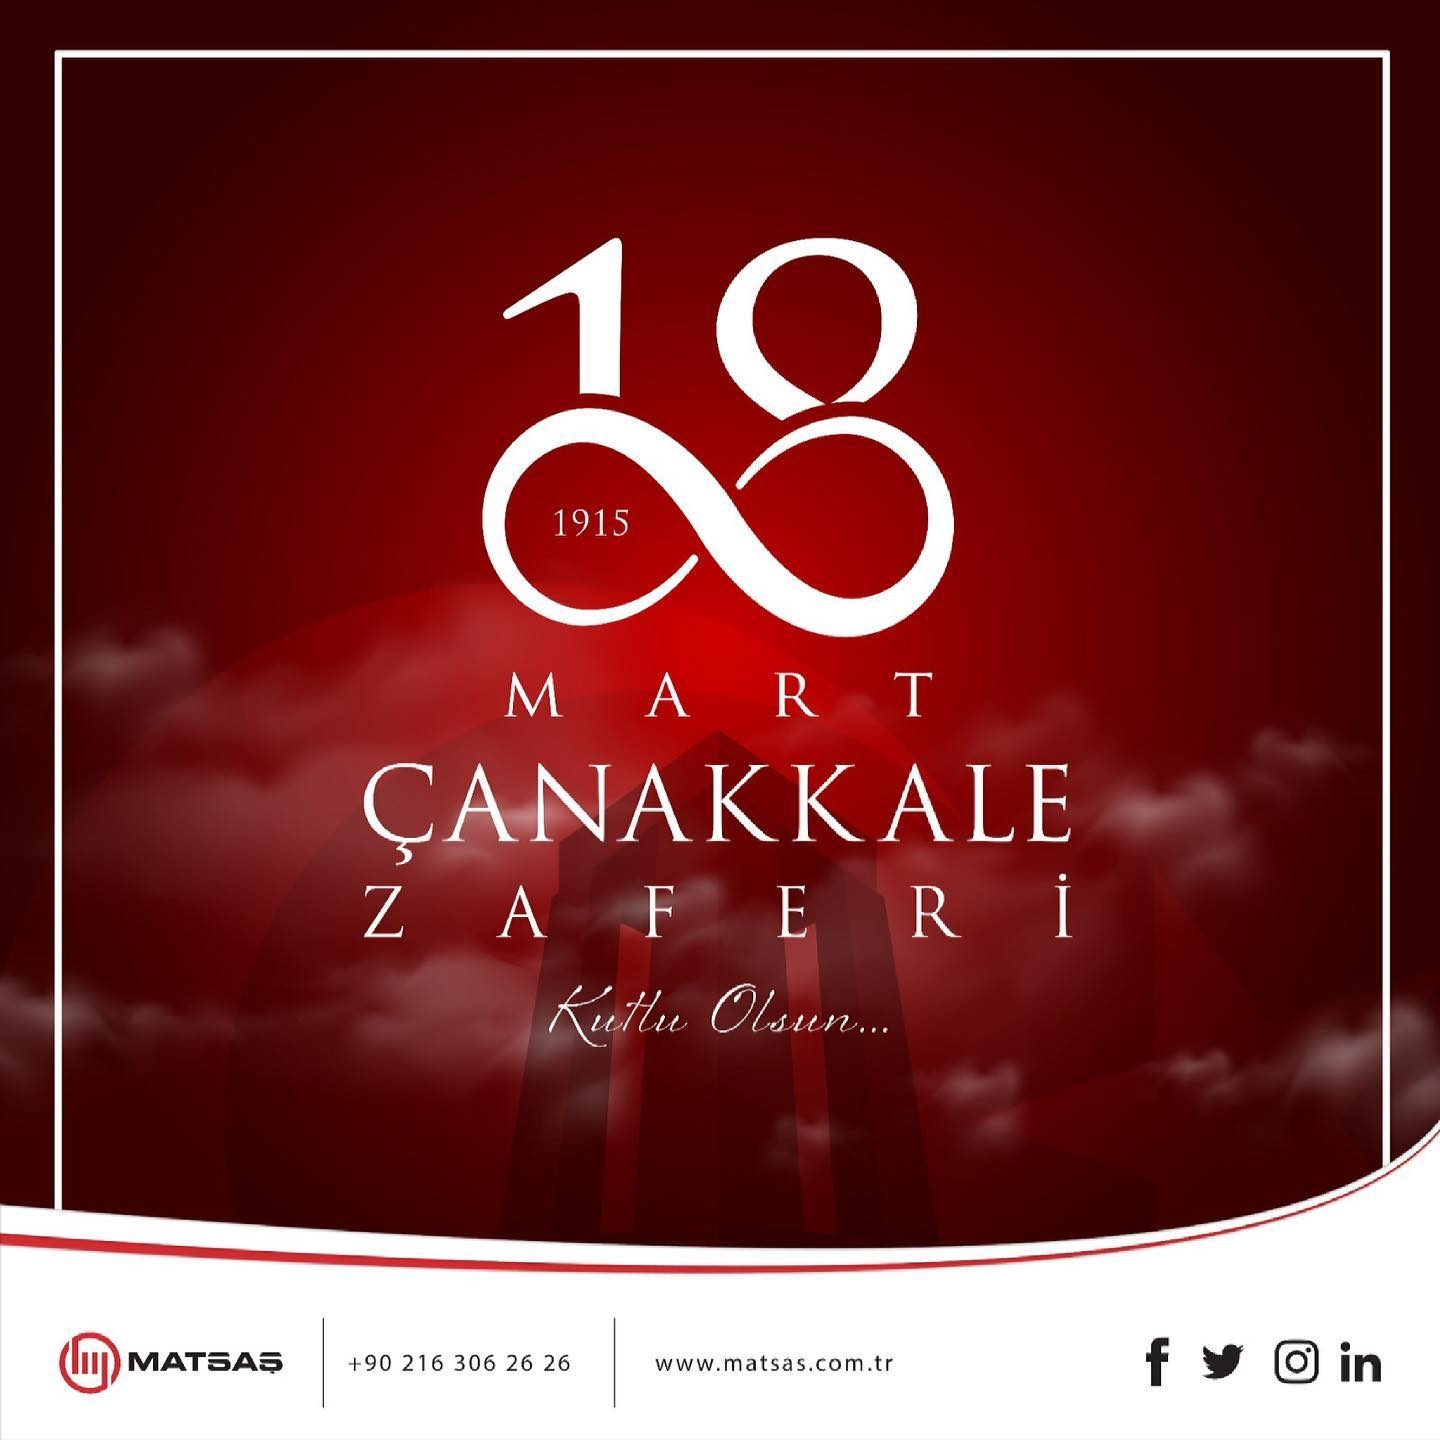 March 18 Canakkale Victory